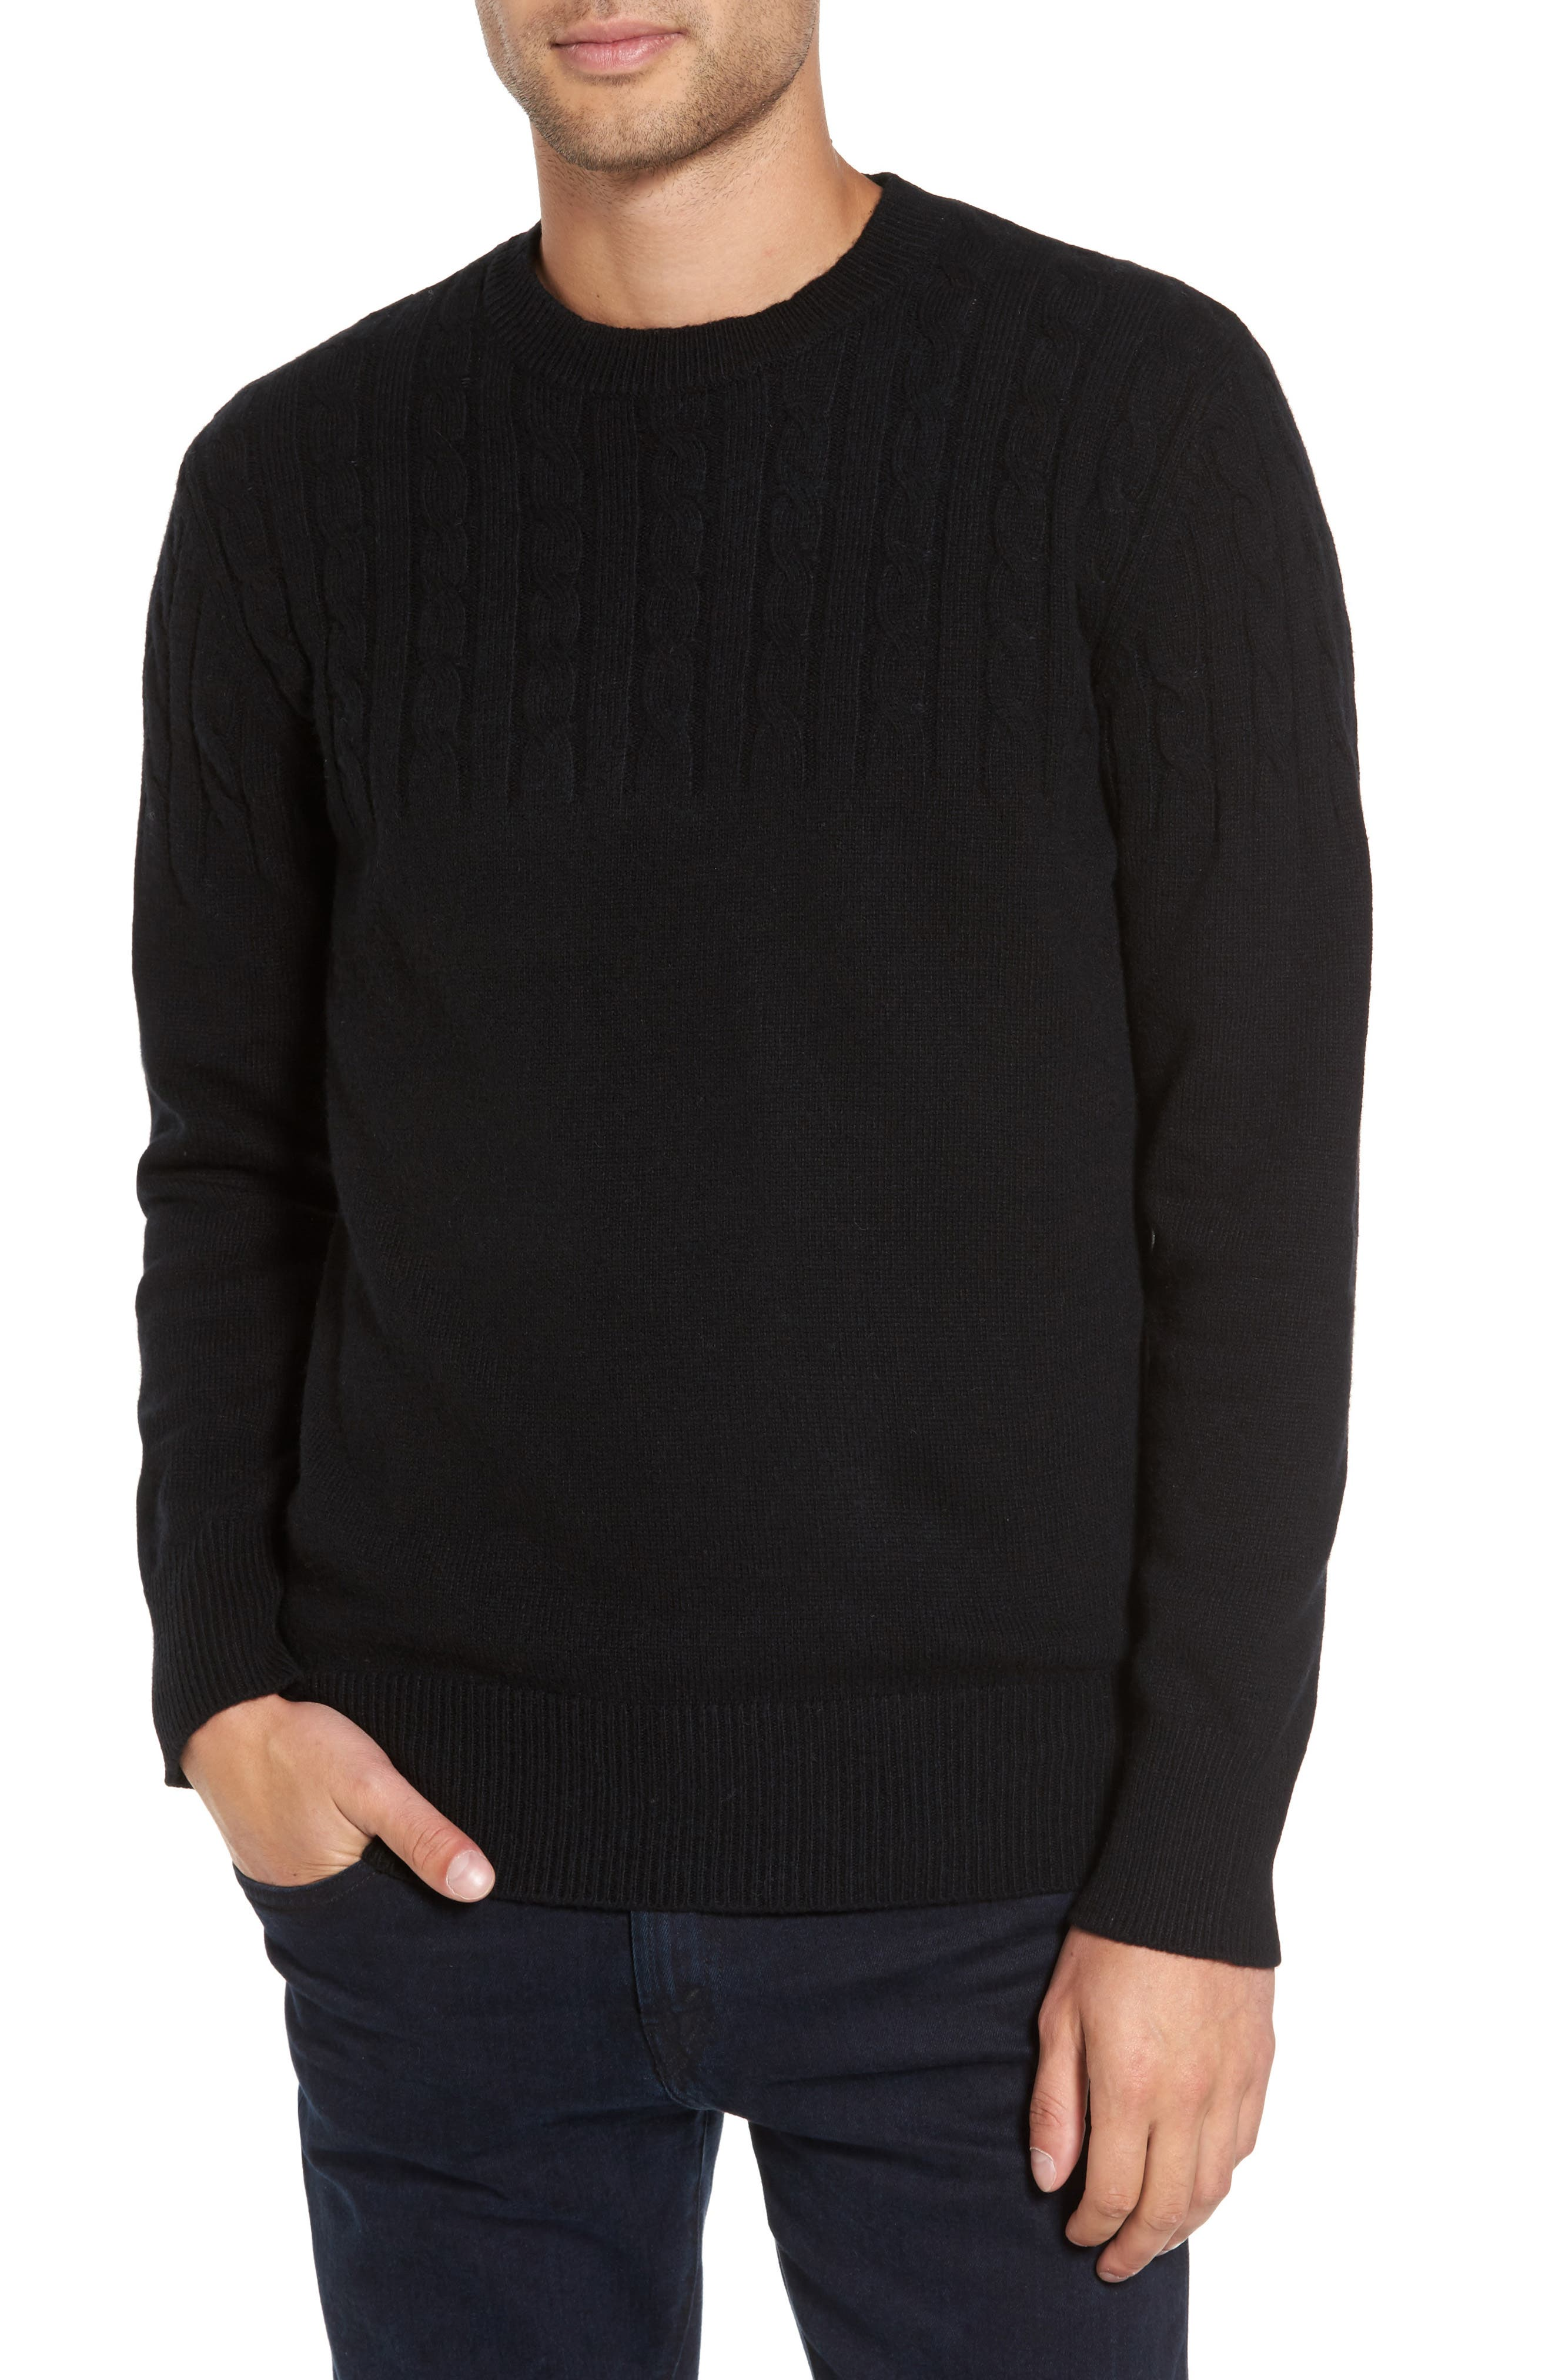 Wool Cable Knit Sweater,                             Main thumbnail 1, color,                             001